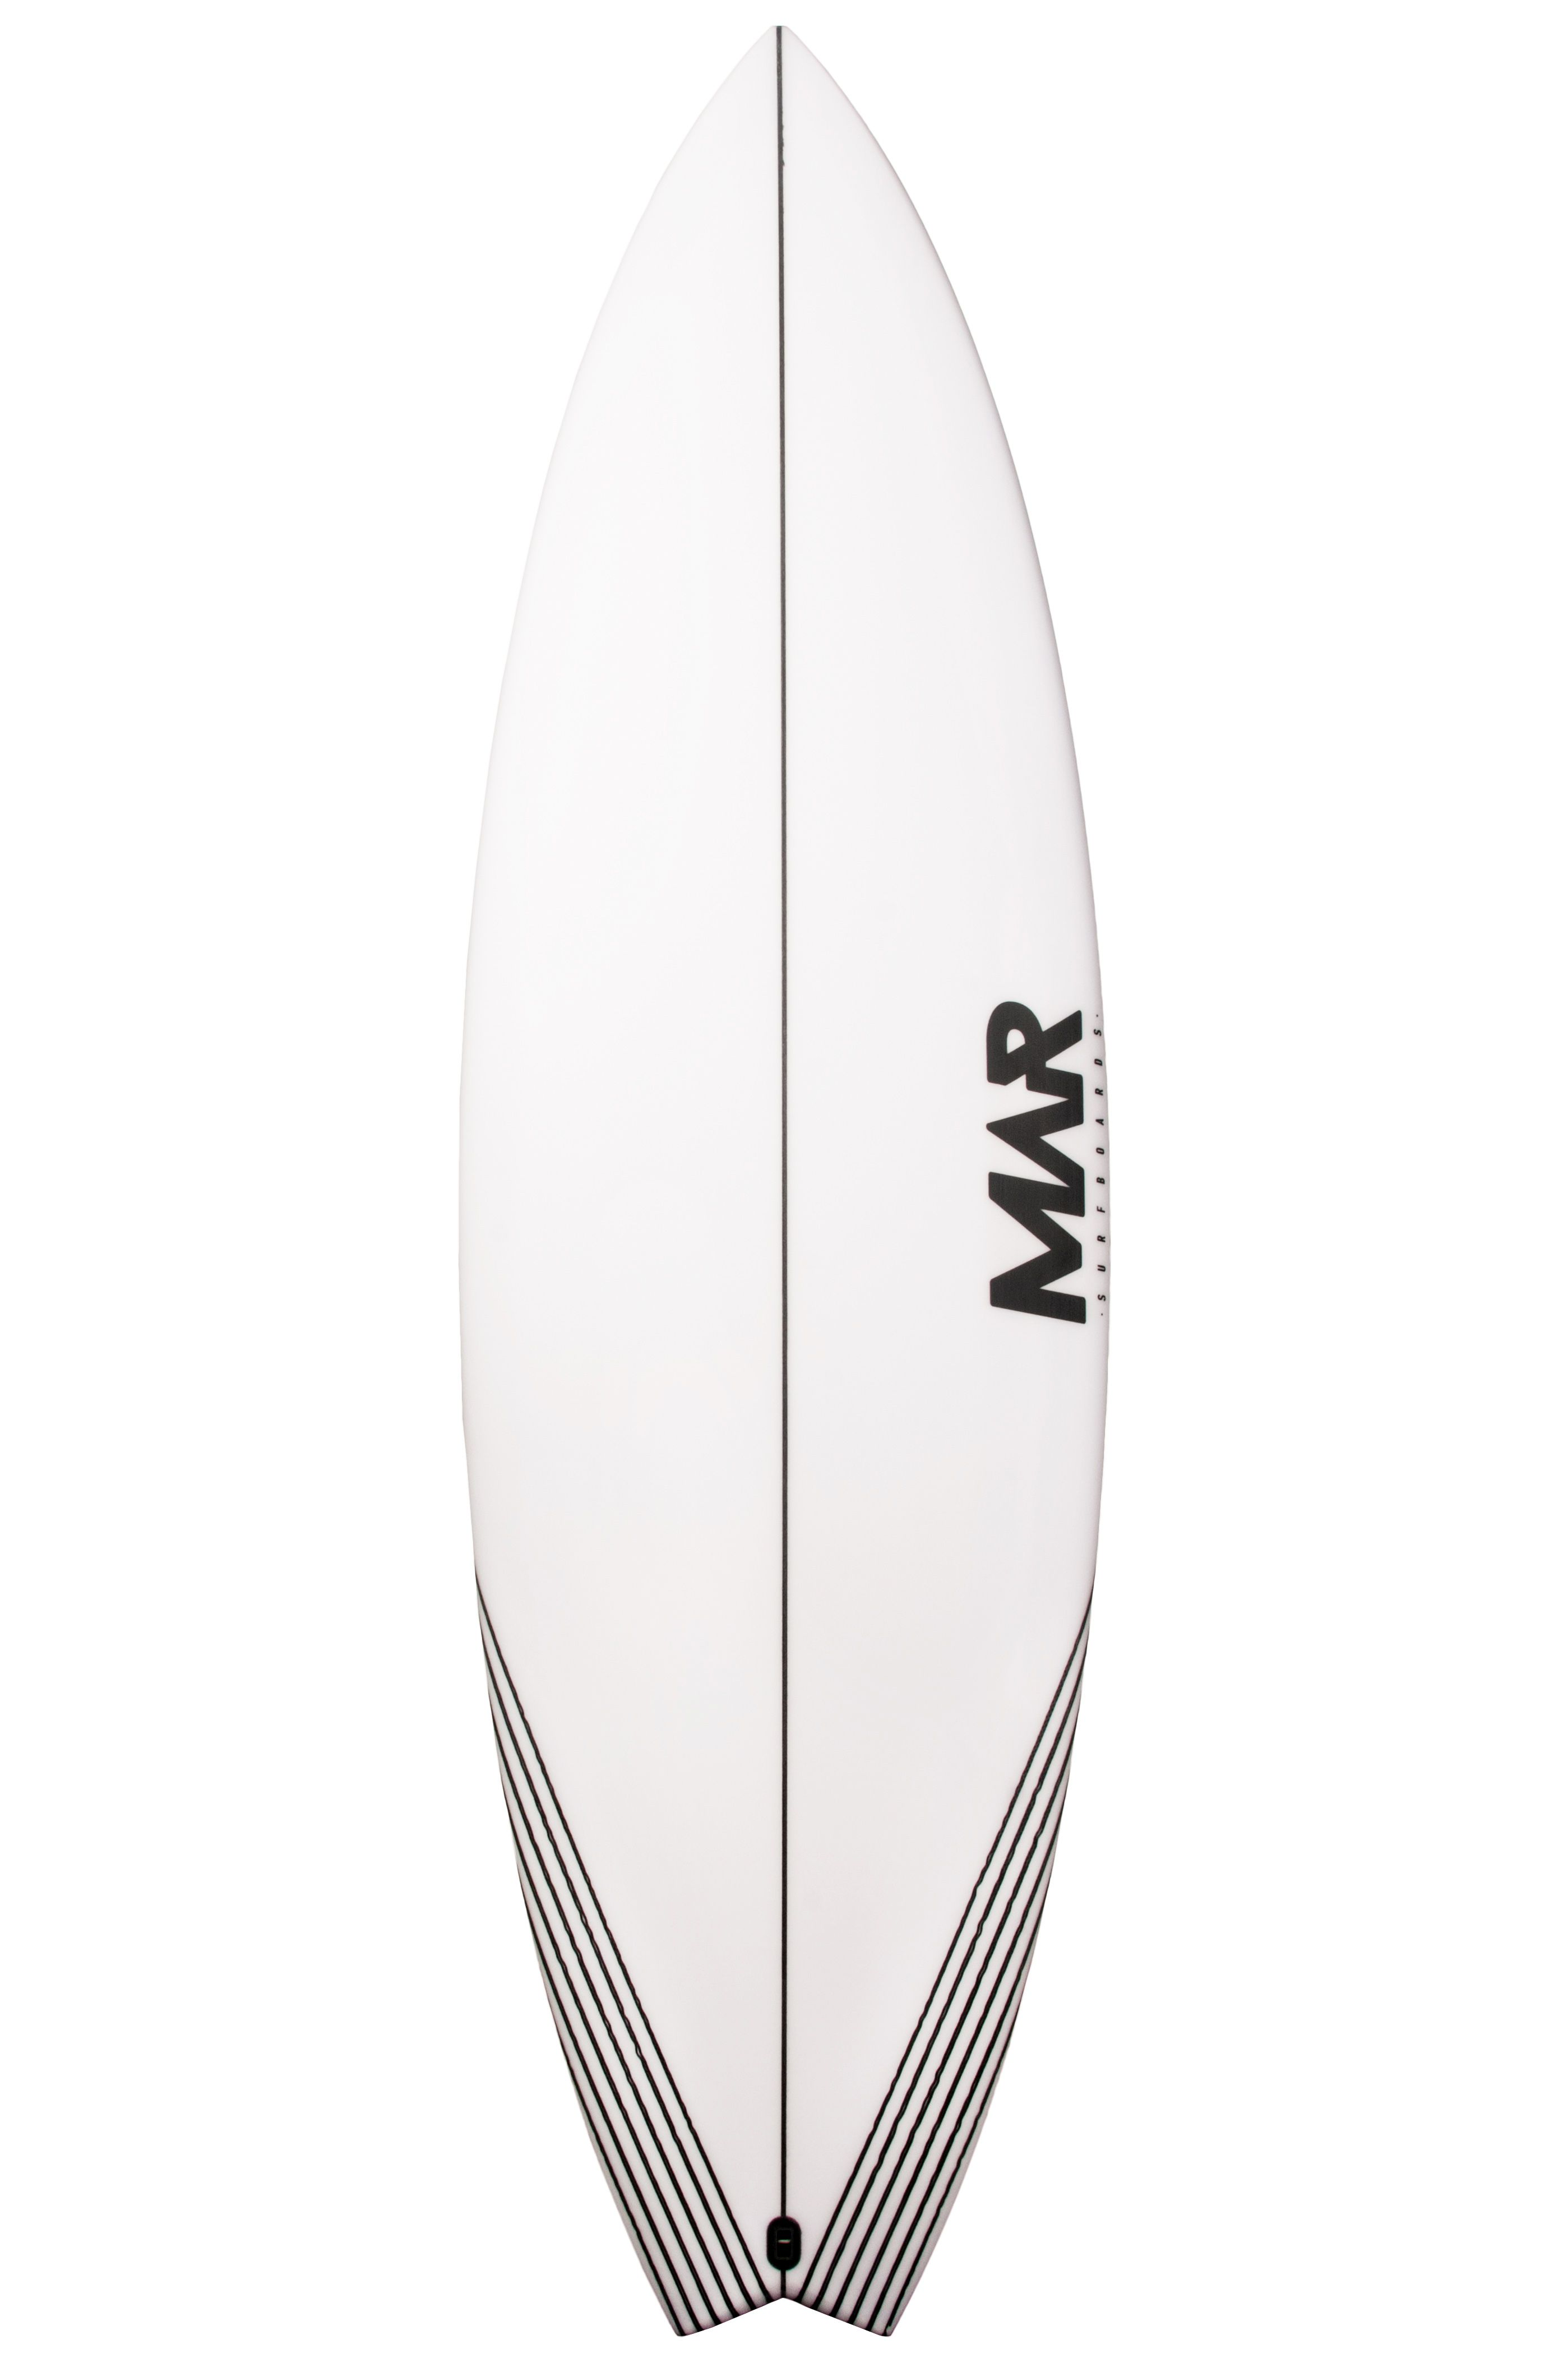 Mar Surf Board 6'1 PARROT PU Swallow Tail - White FCS II 6ft1